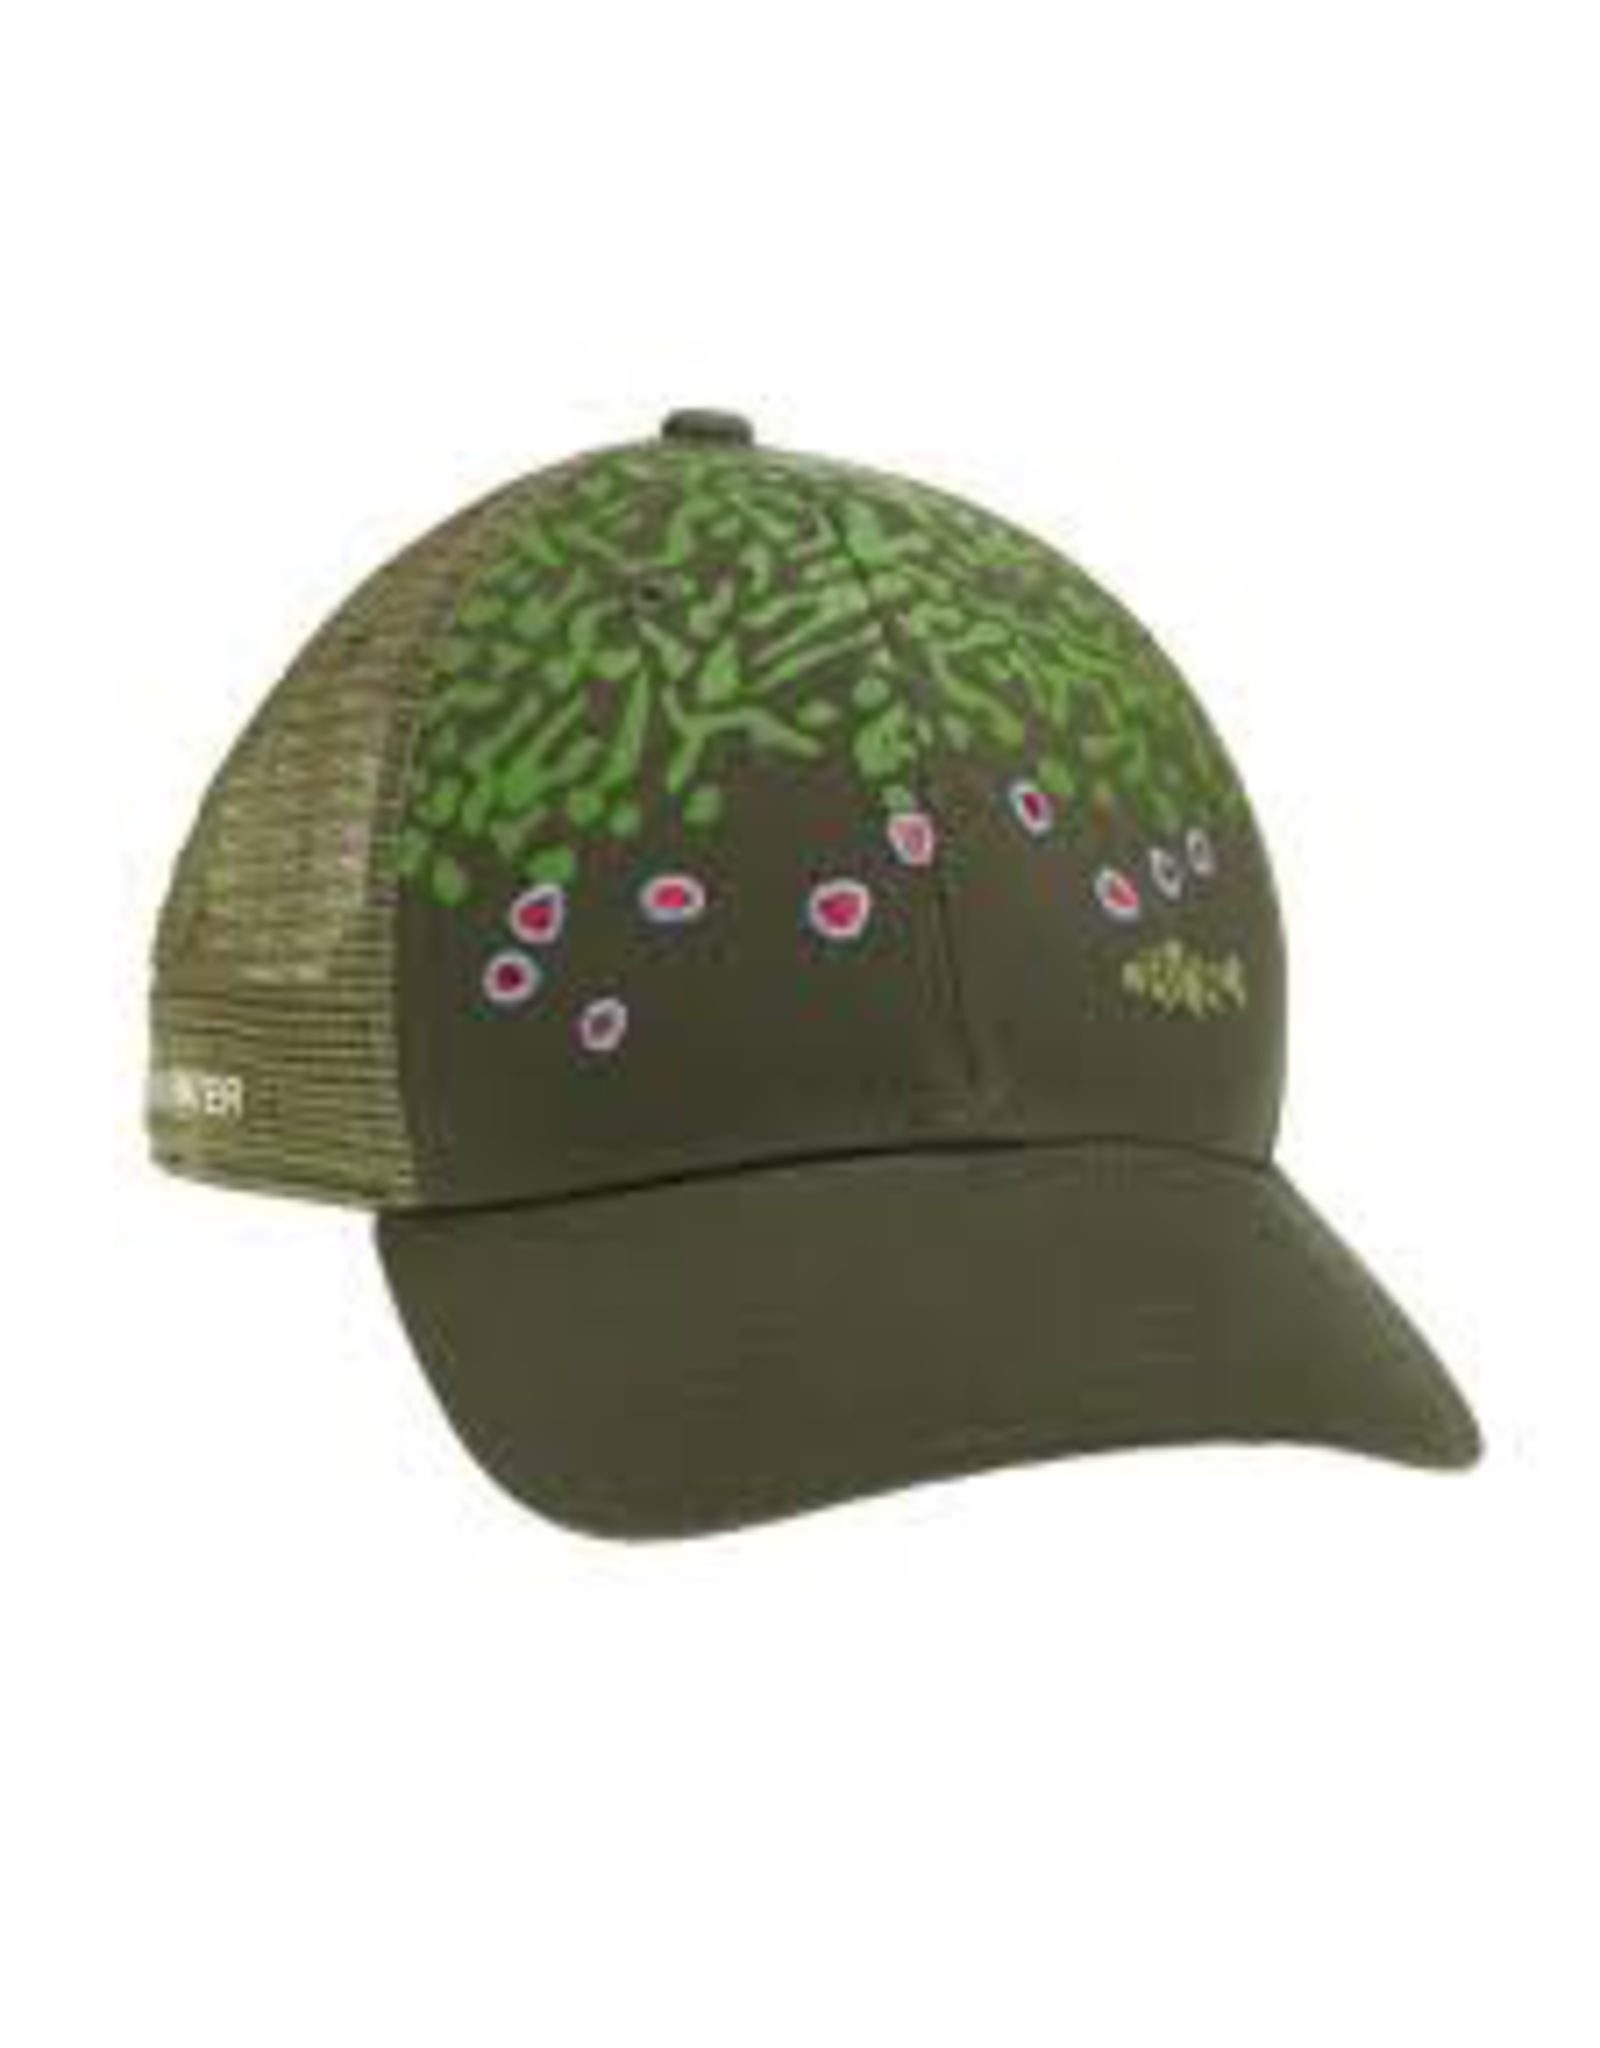 Rep Your Water Brook Trout Skin Trucker